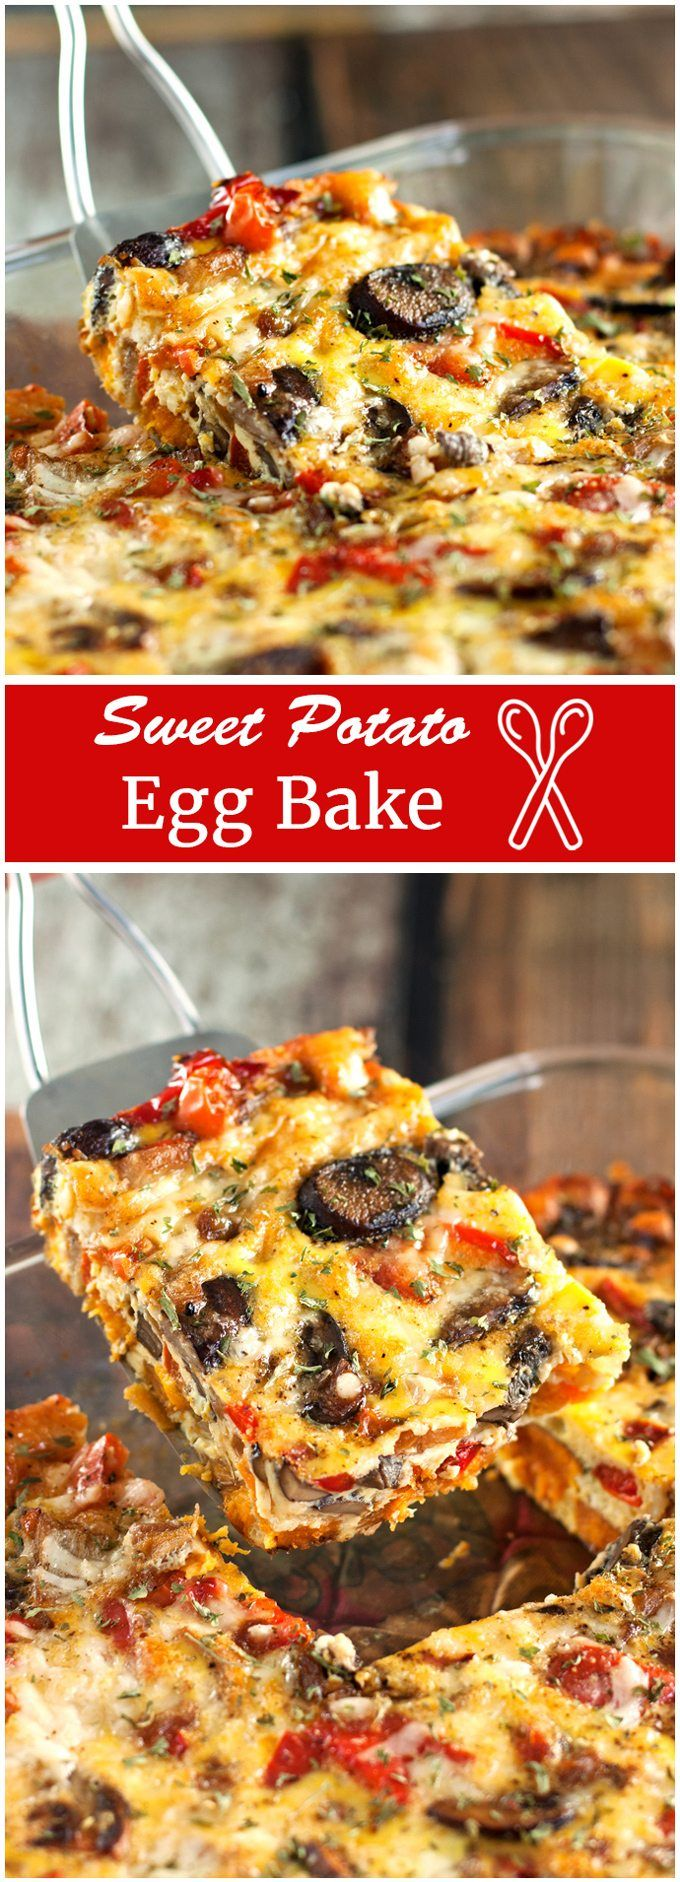 Savory eggs packed with sweet potatoes, mushrooms, onions, peppers, and cheese - bursting with delicious flavors and beautiful colors! Assemble it the night before, for a simple recipe that cooks while you visit with family and friends. | 2teaspoons.com